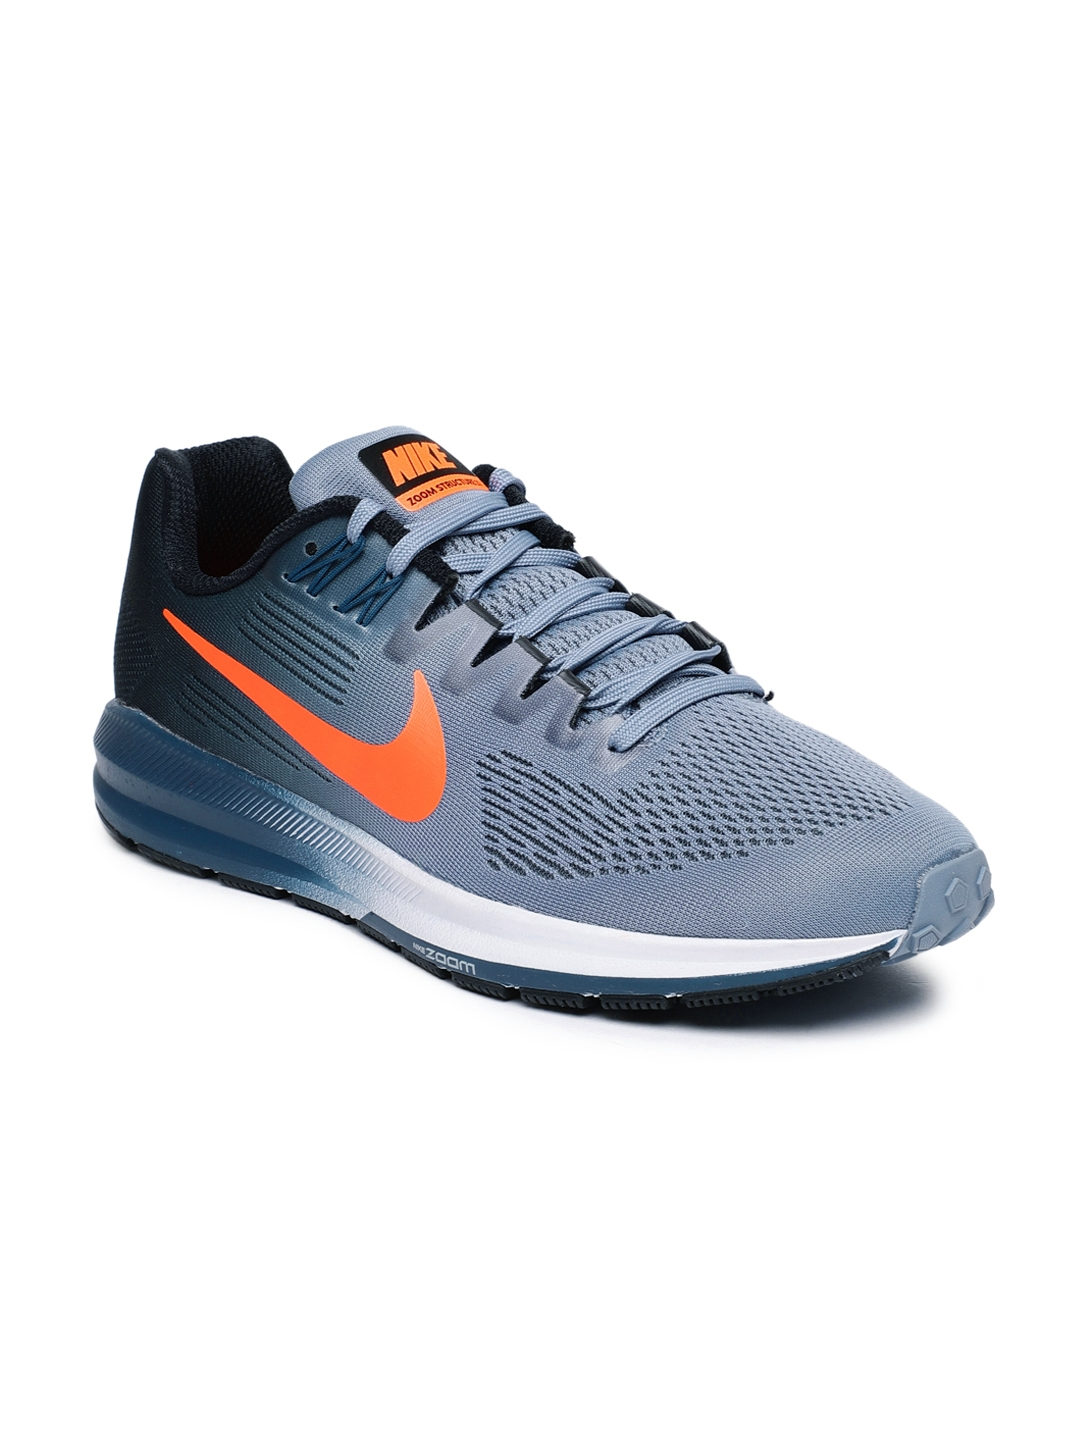 anunciar salchicha Amigo  Buy Nike Men Blue & Black Air Zoom Structure 21 Running Shoes - Sports Shoes  for Men 2528123 | Myntra